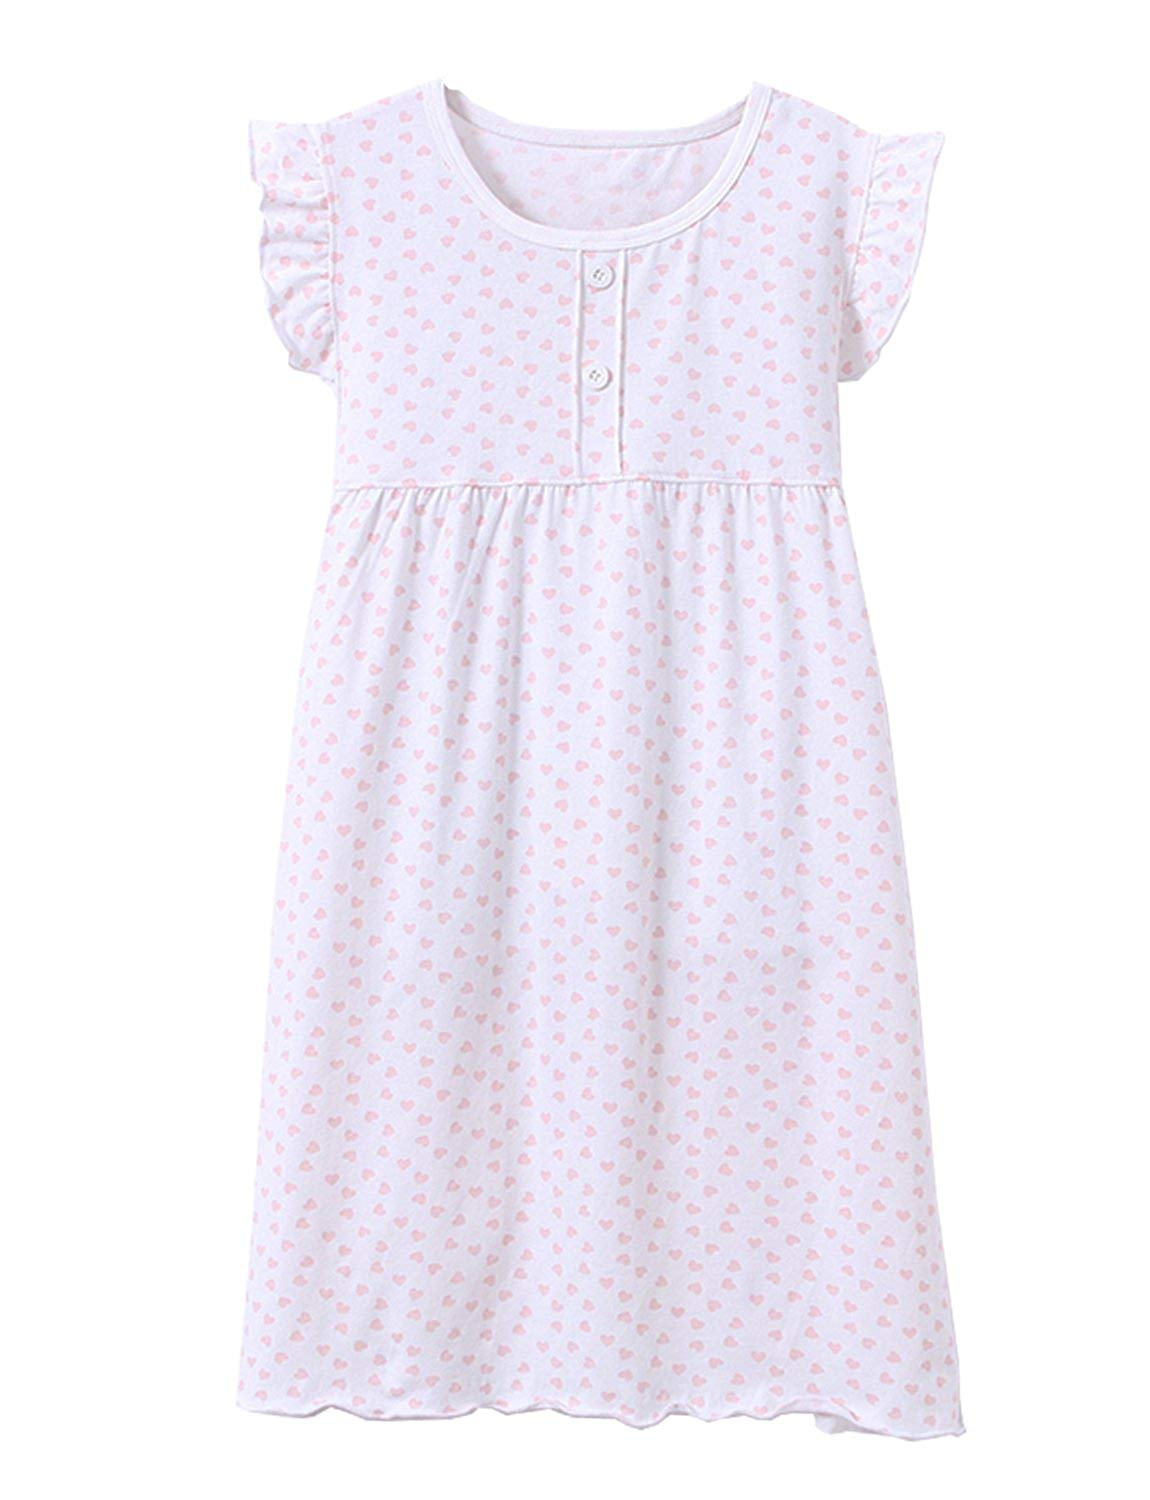 KINYBABY Little Girls Cute Cotton Nightgown Lace Bowknot Nightdress Sleepwear Pajamas